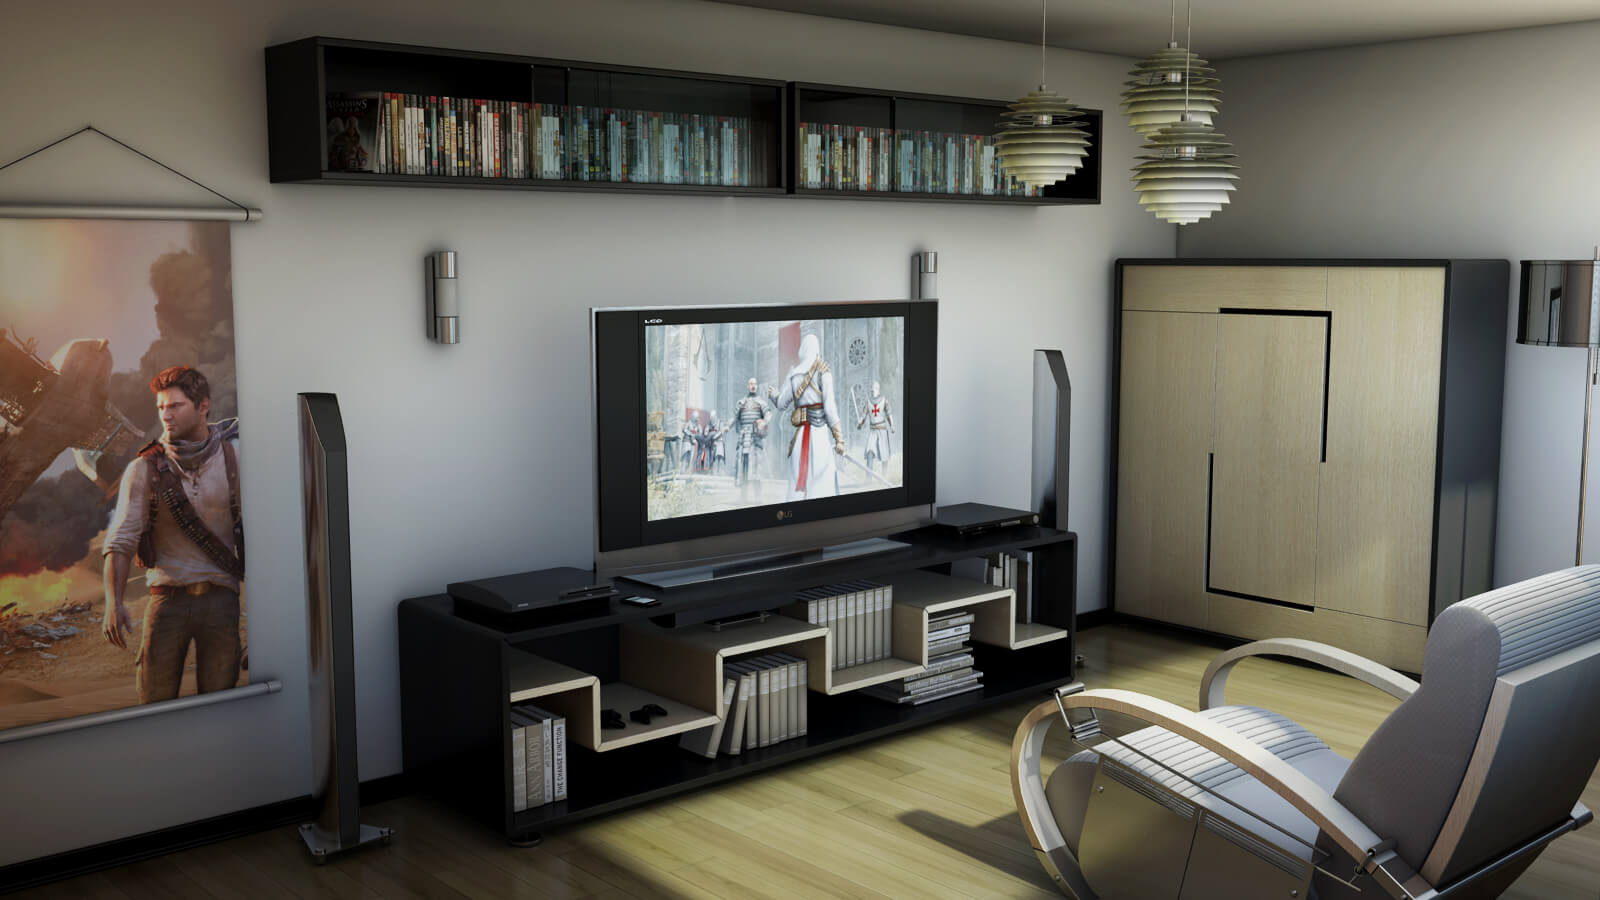 50 best setup of video game room ideas a gamer 39 s guide. Black Bedroom Furniture Sets. Home Design Ideas